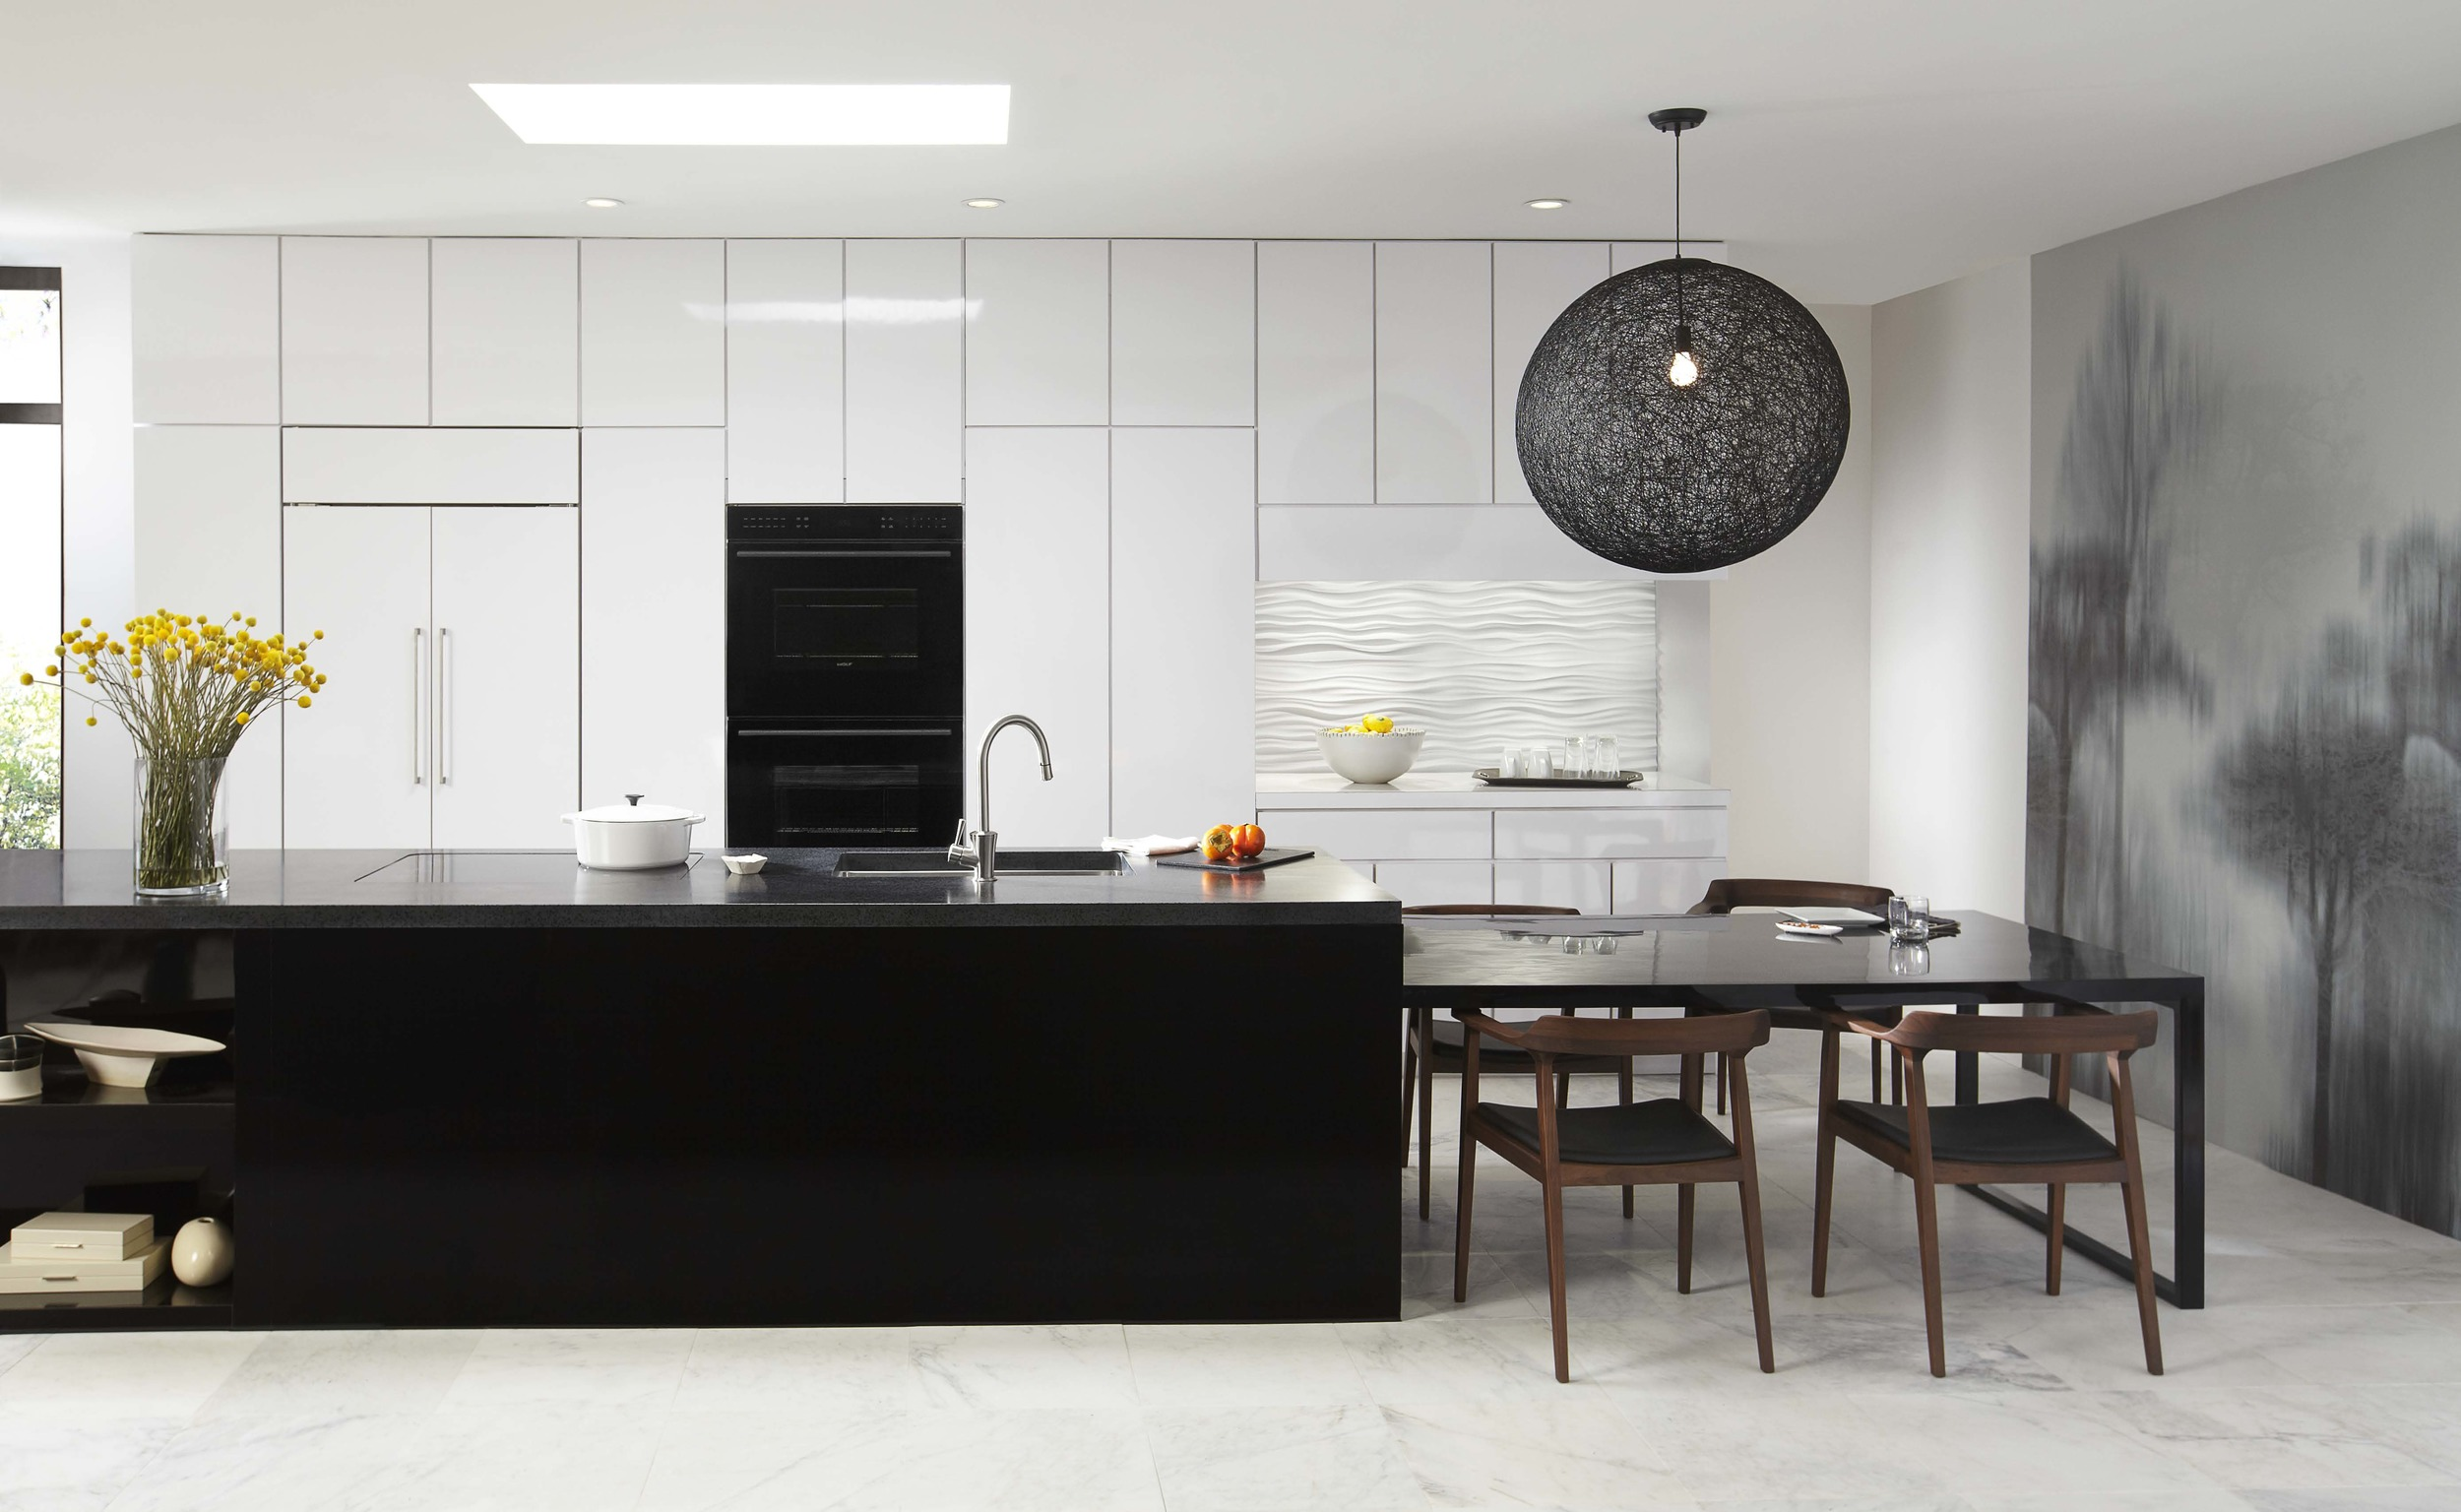 Sub-Zero-Black-and-White-Kitchen.jpg